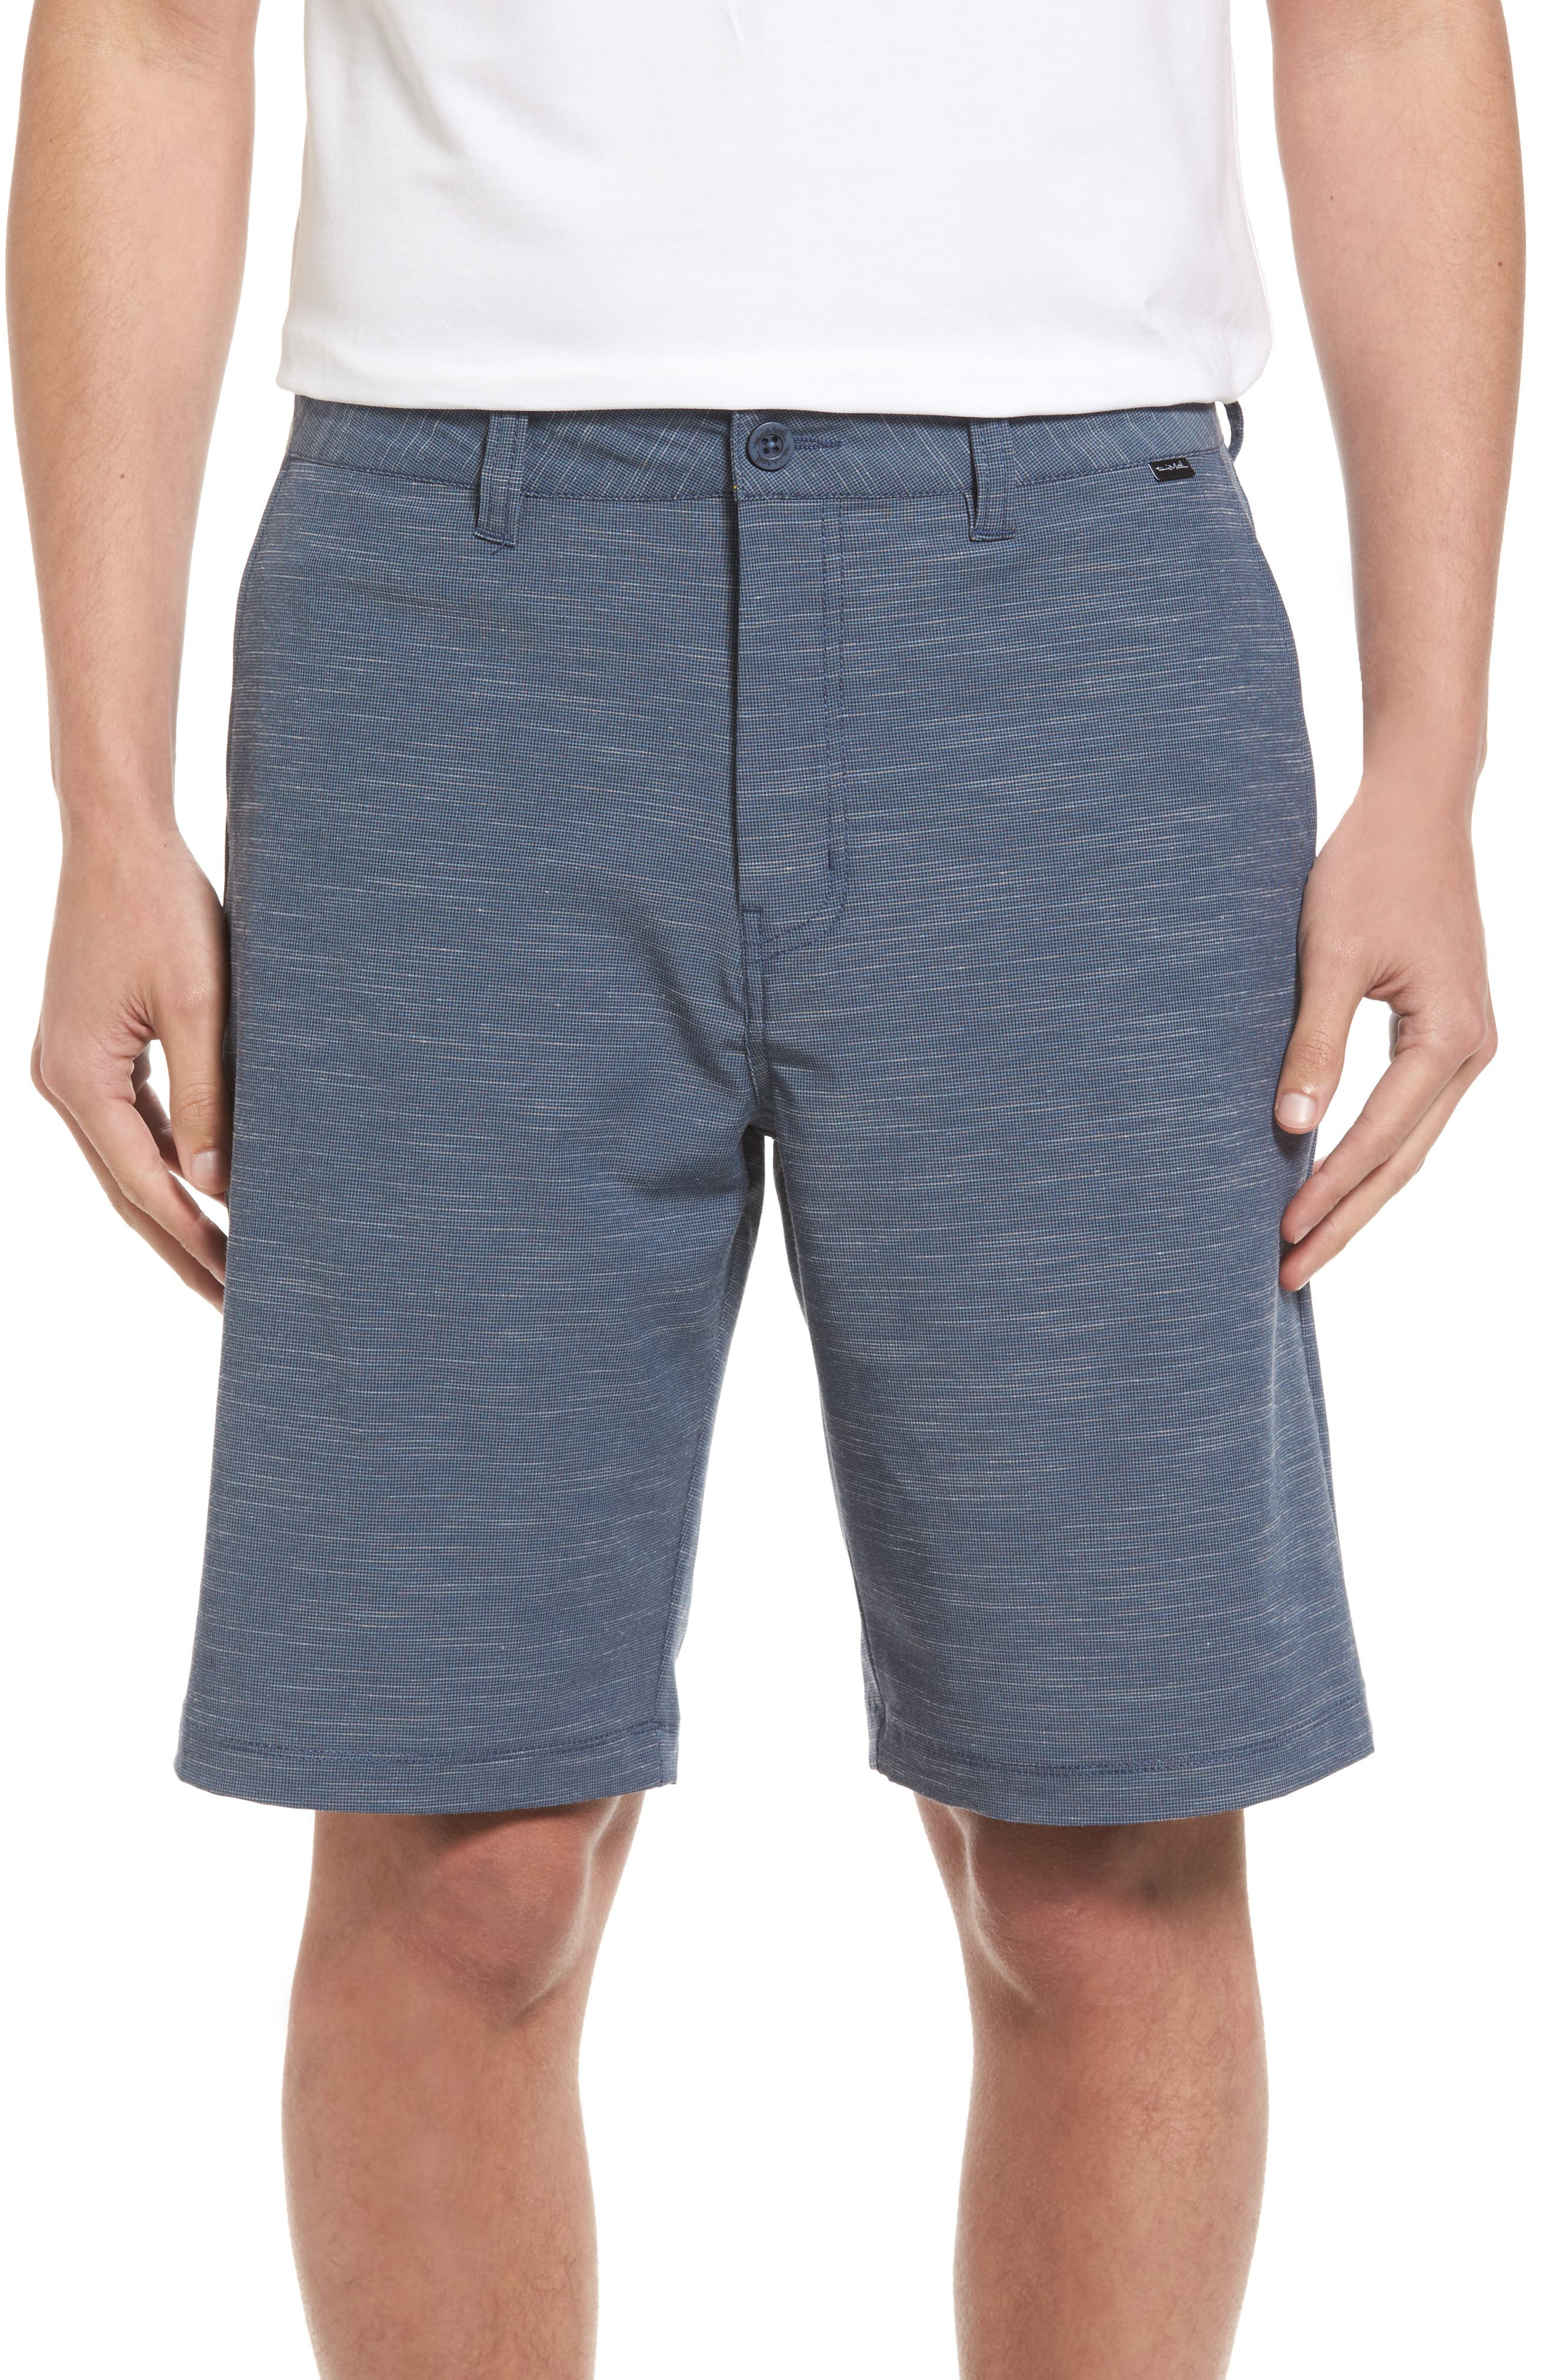 Fisher Shorts,                             Main thumbnail 1, color,                             Heather Blue Nights